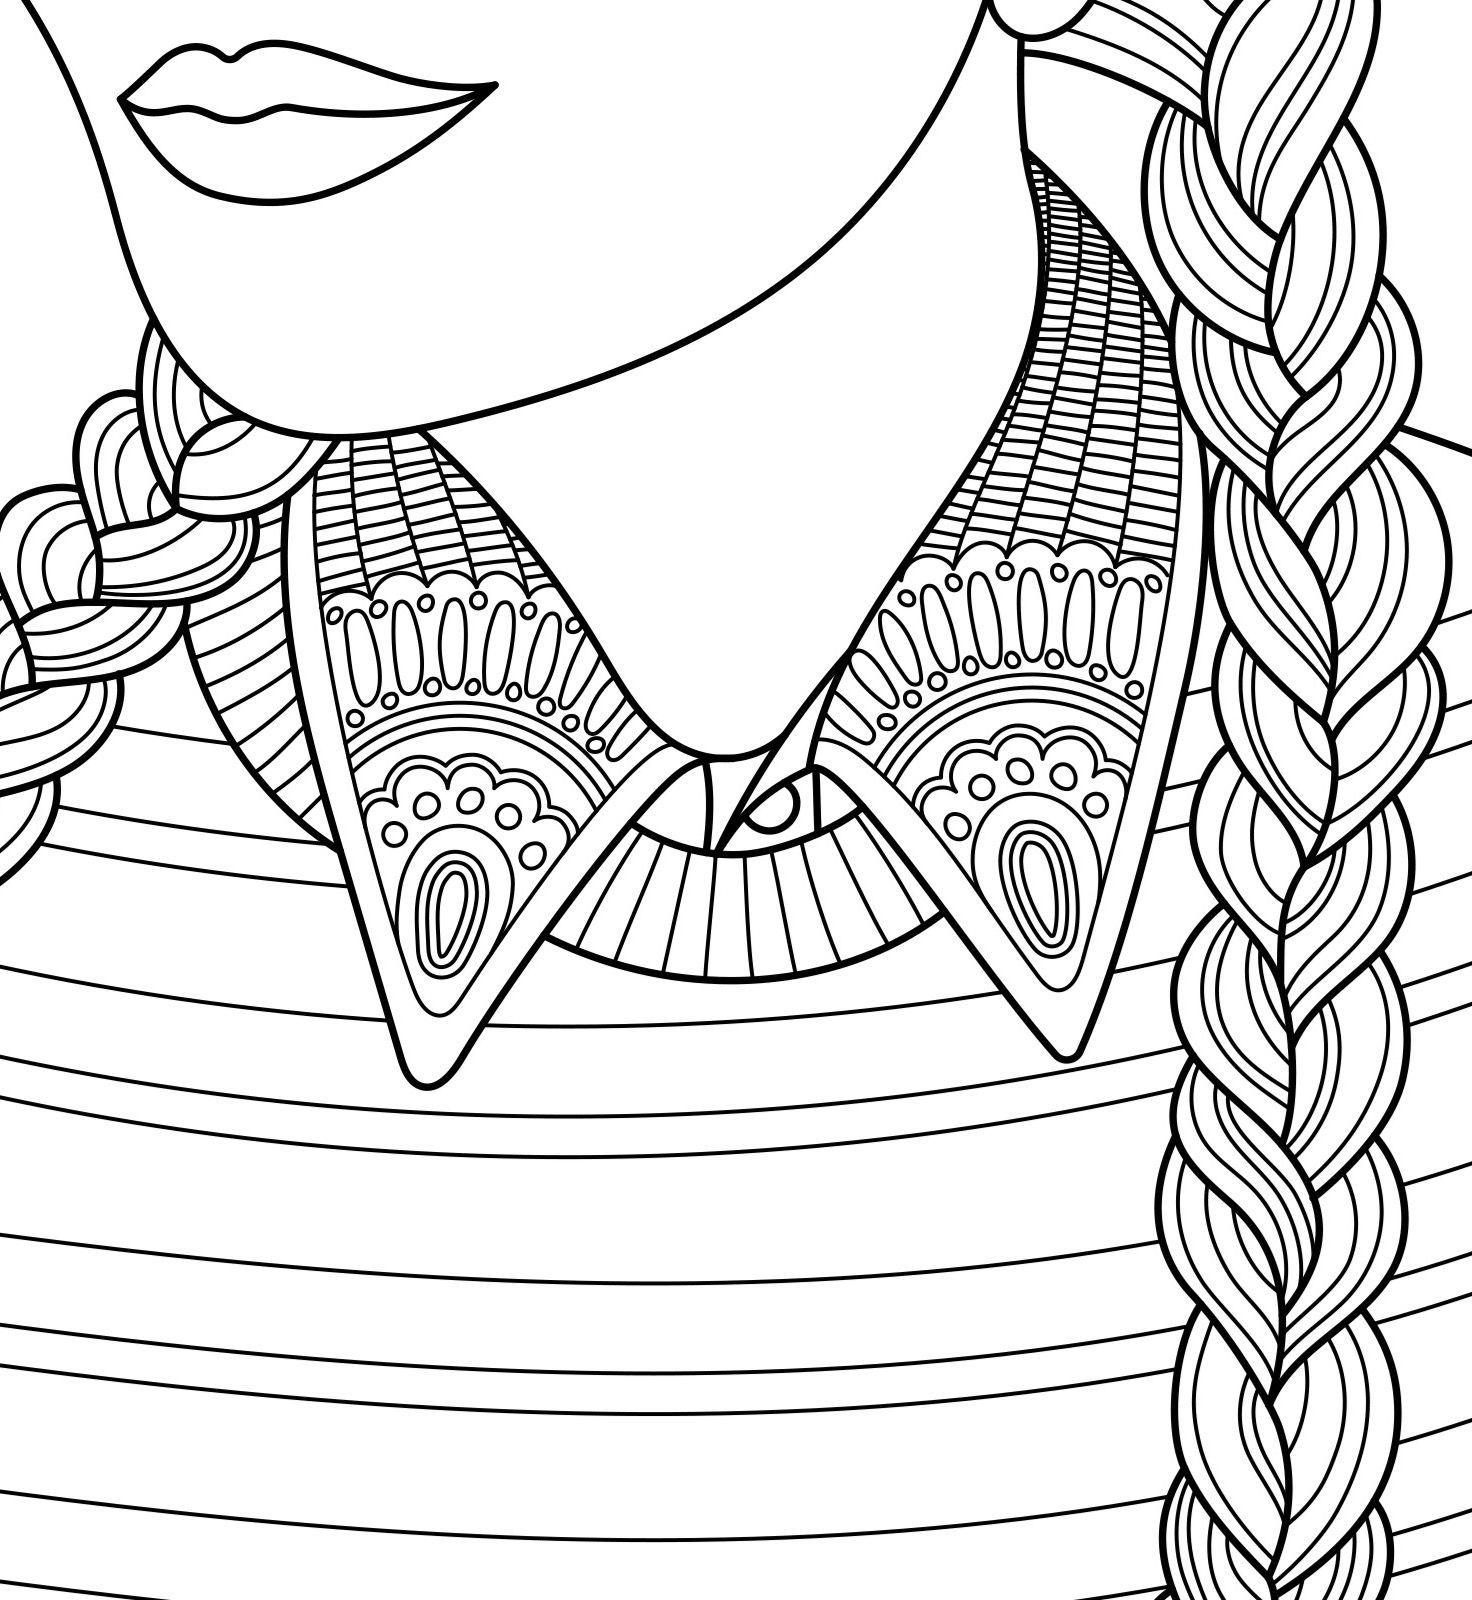 Girl With Plaits To Colour With Coloringbookforme